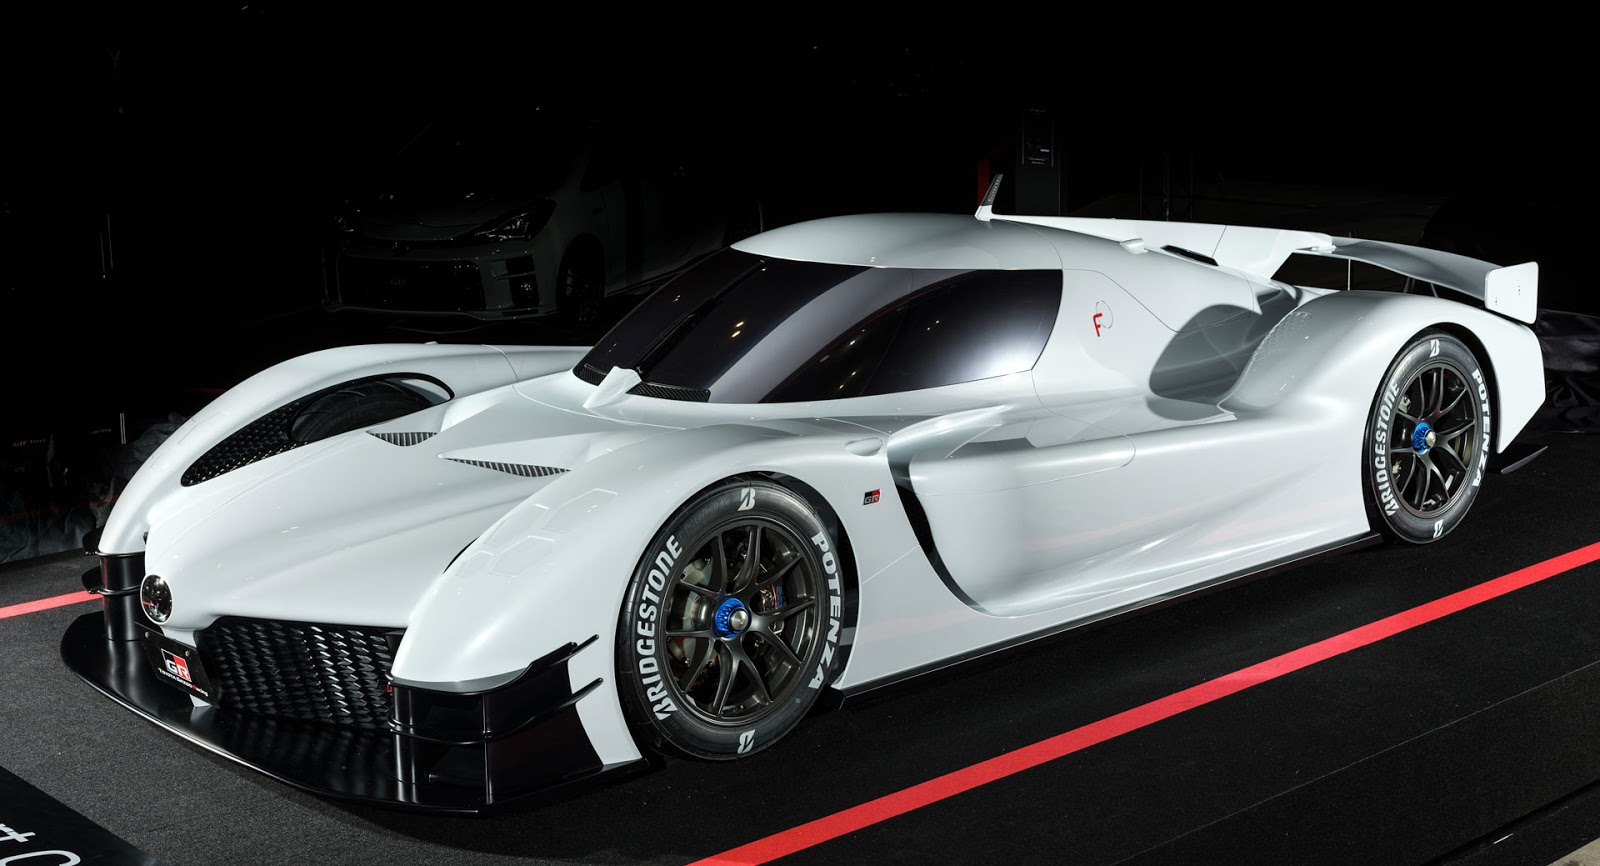 Toyota GR Super Sport Concept hints at future supercar